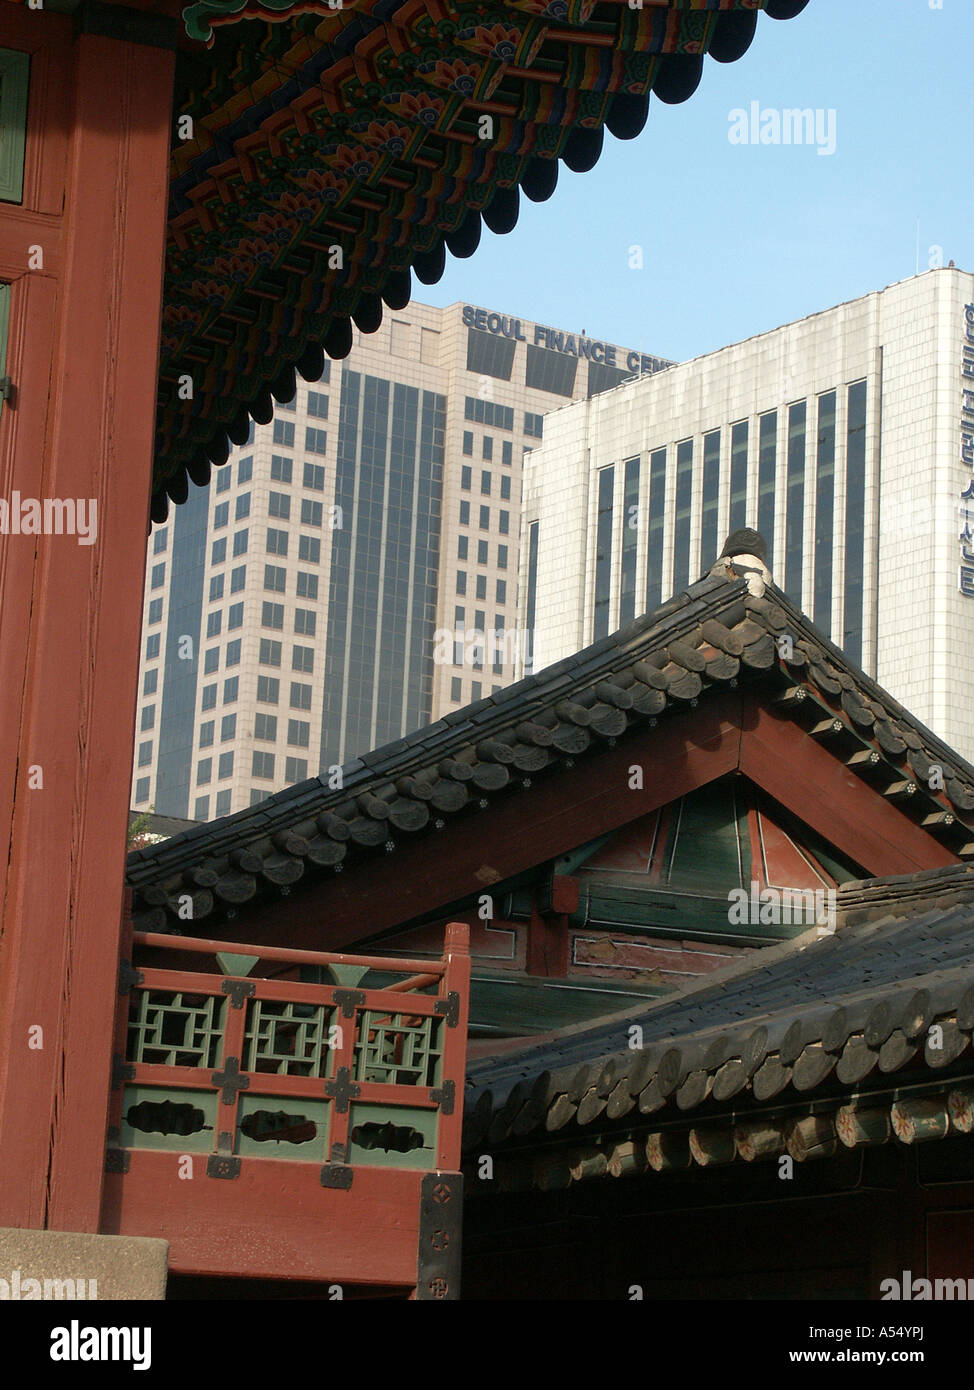 Painet ip2231 korea old new royal palace seoul 2003 country developing nation less economically developed culture - Stock Image